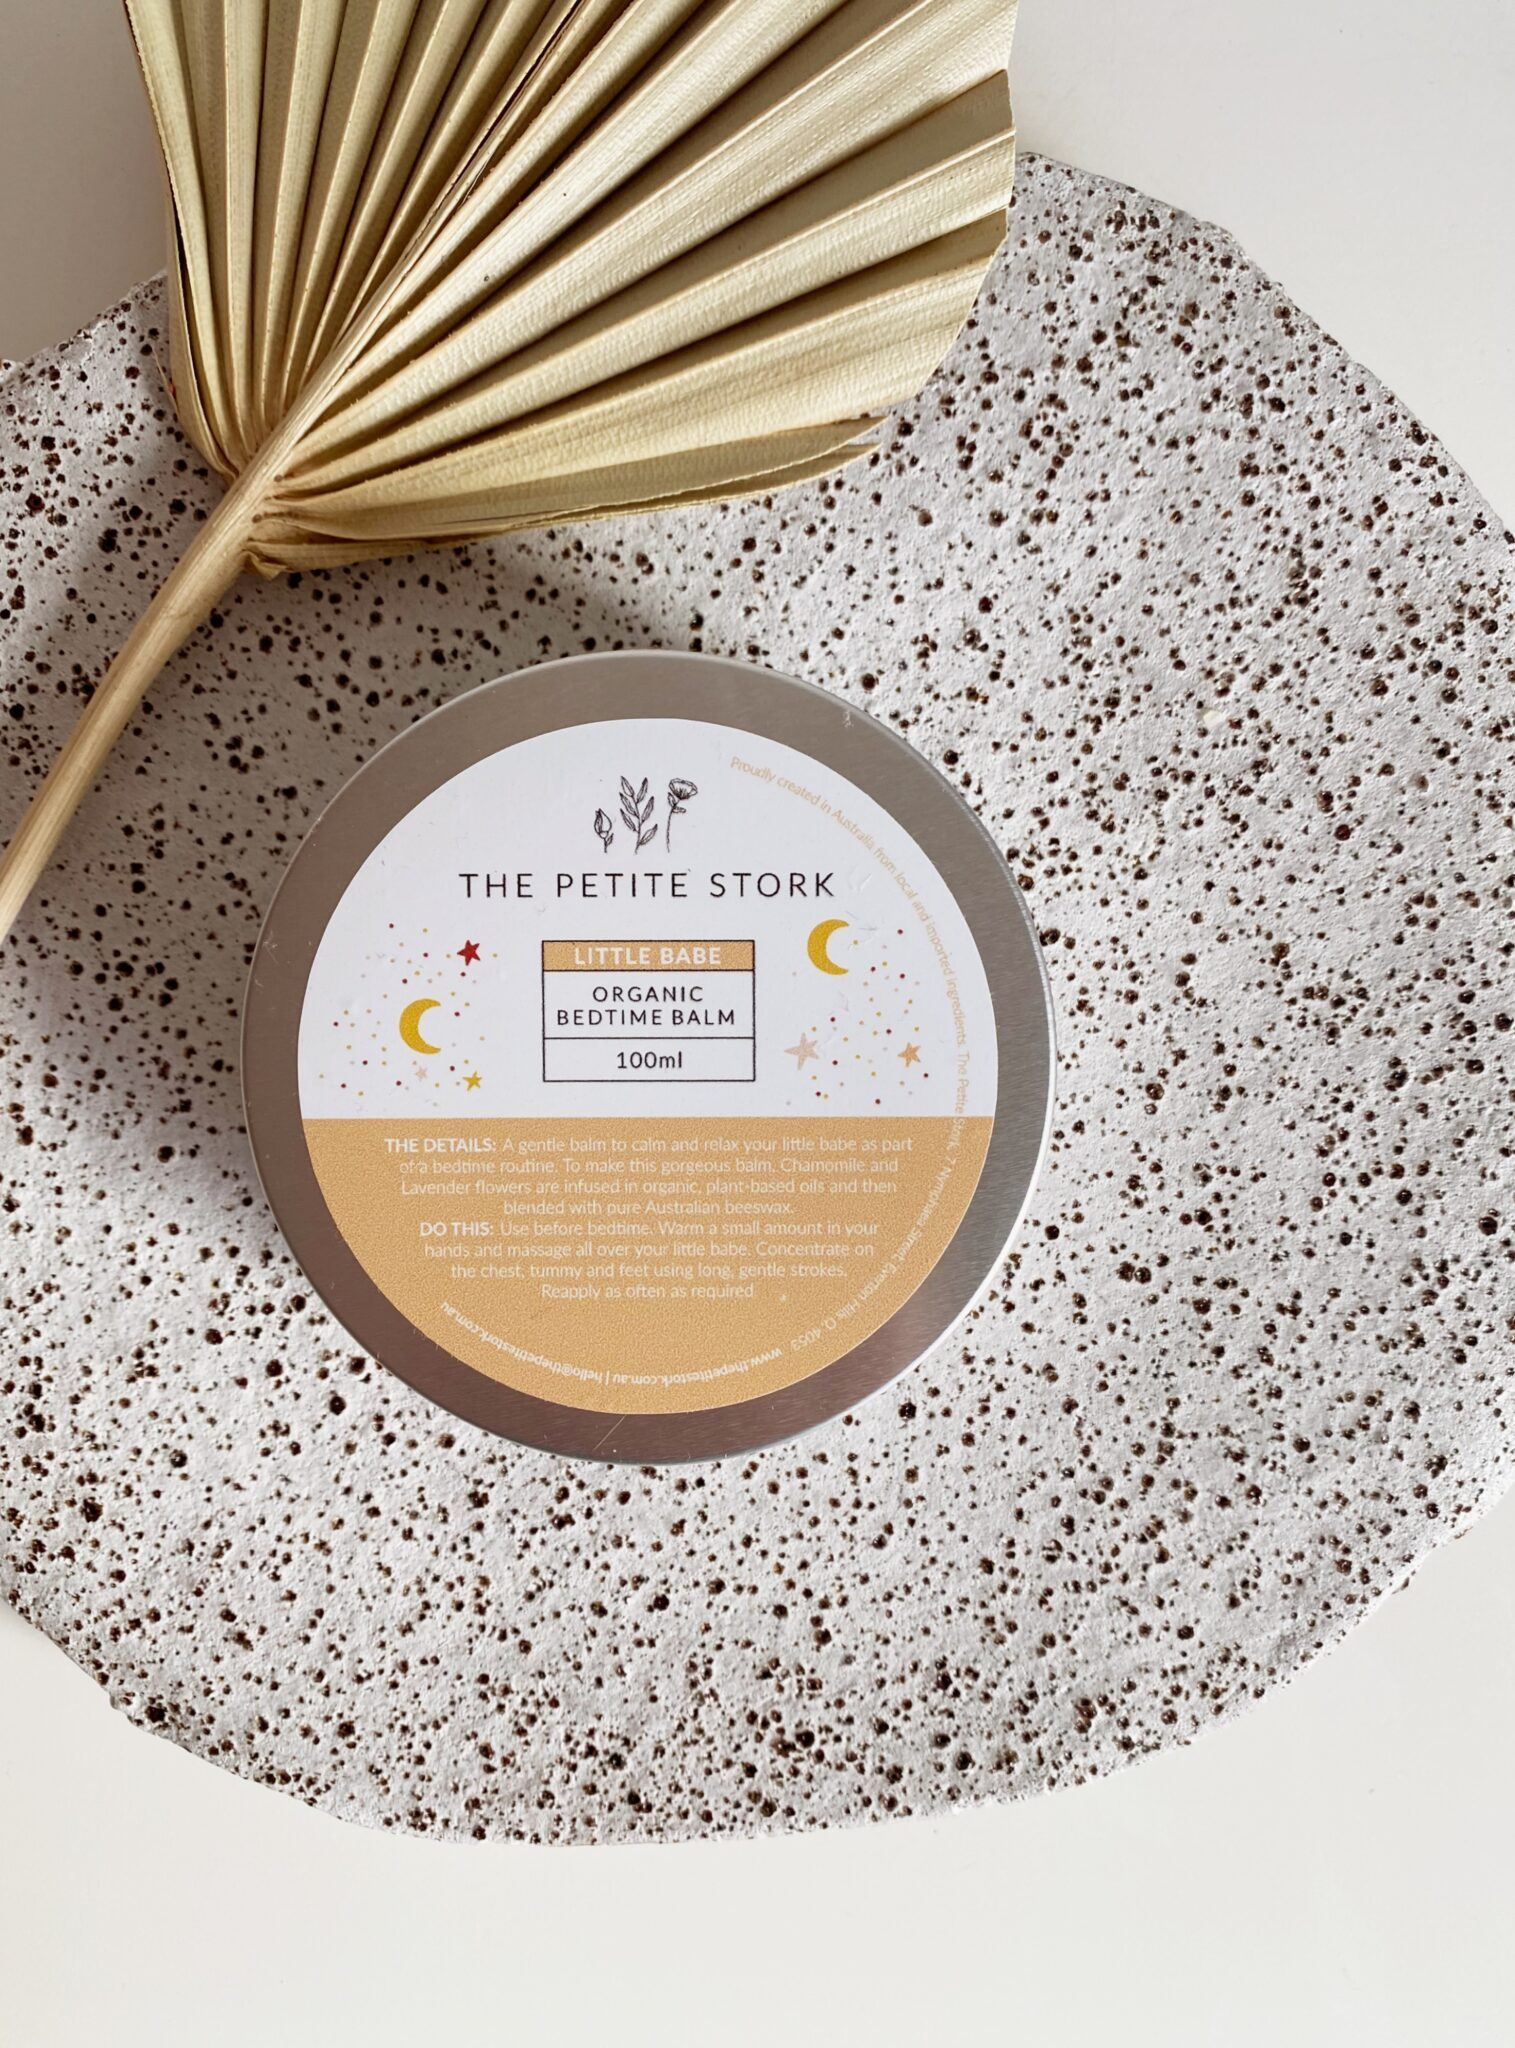 Little Babe Organic Bedtime Balm - The Petite Stork